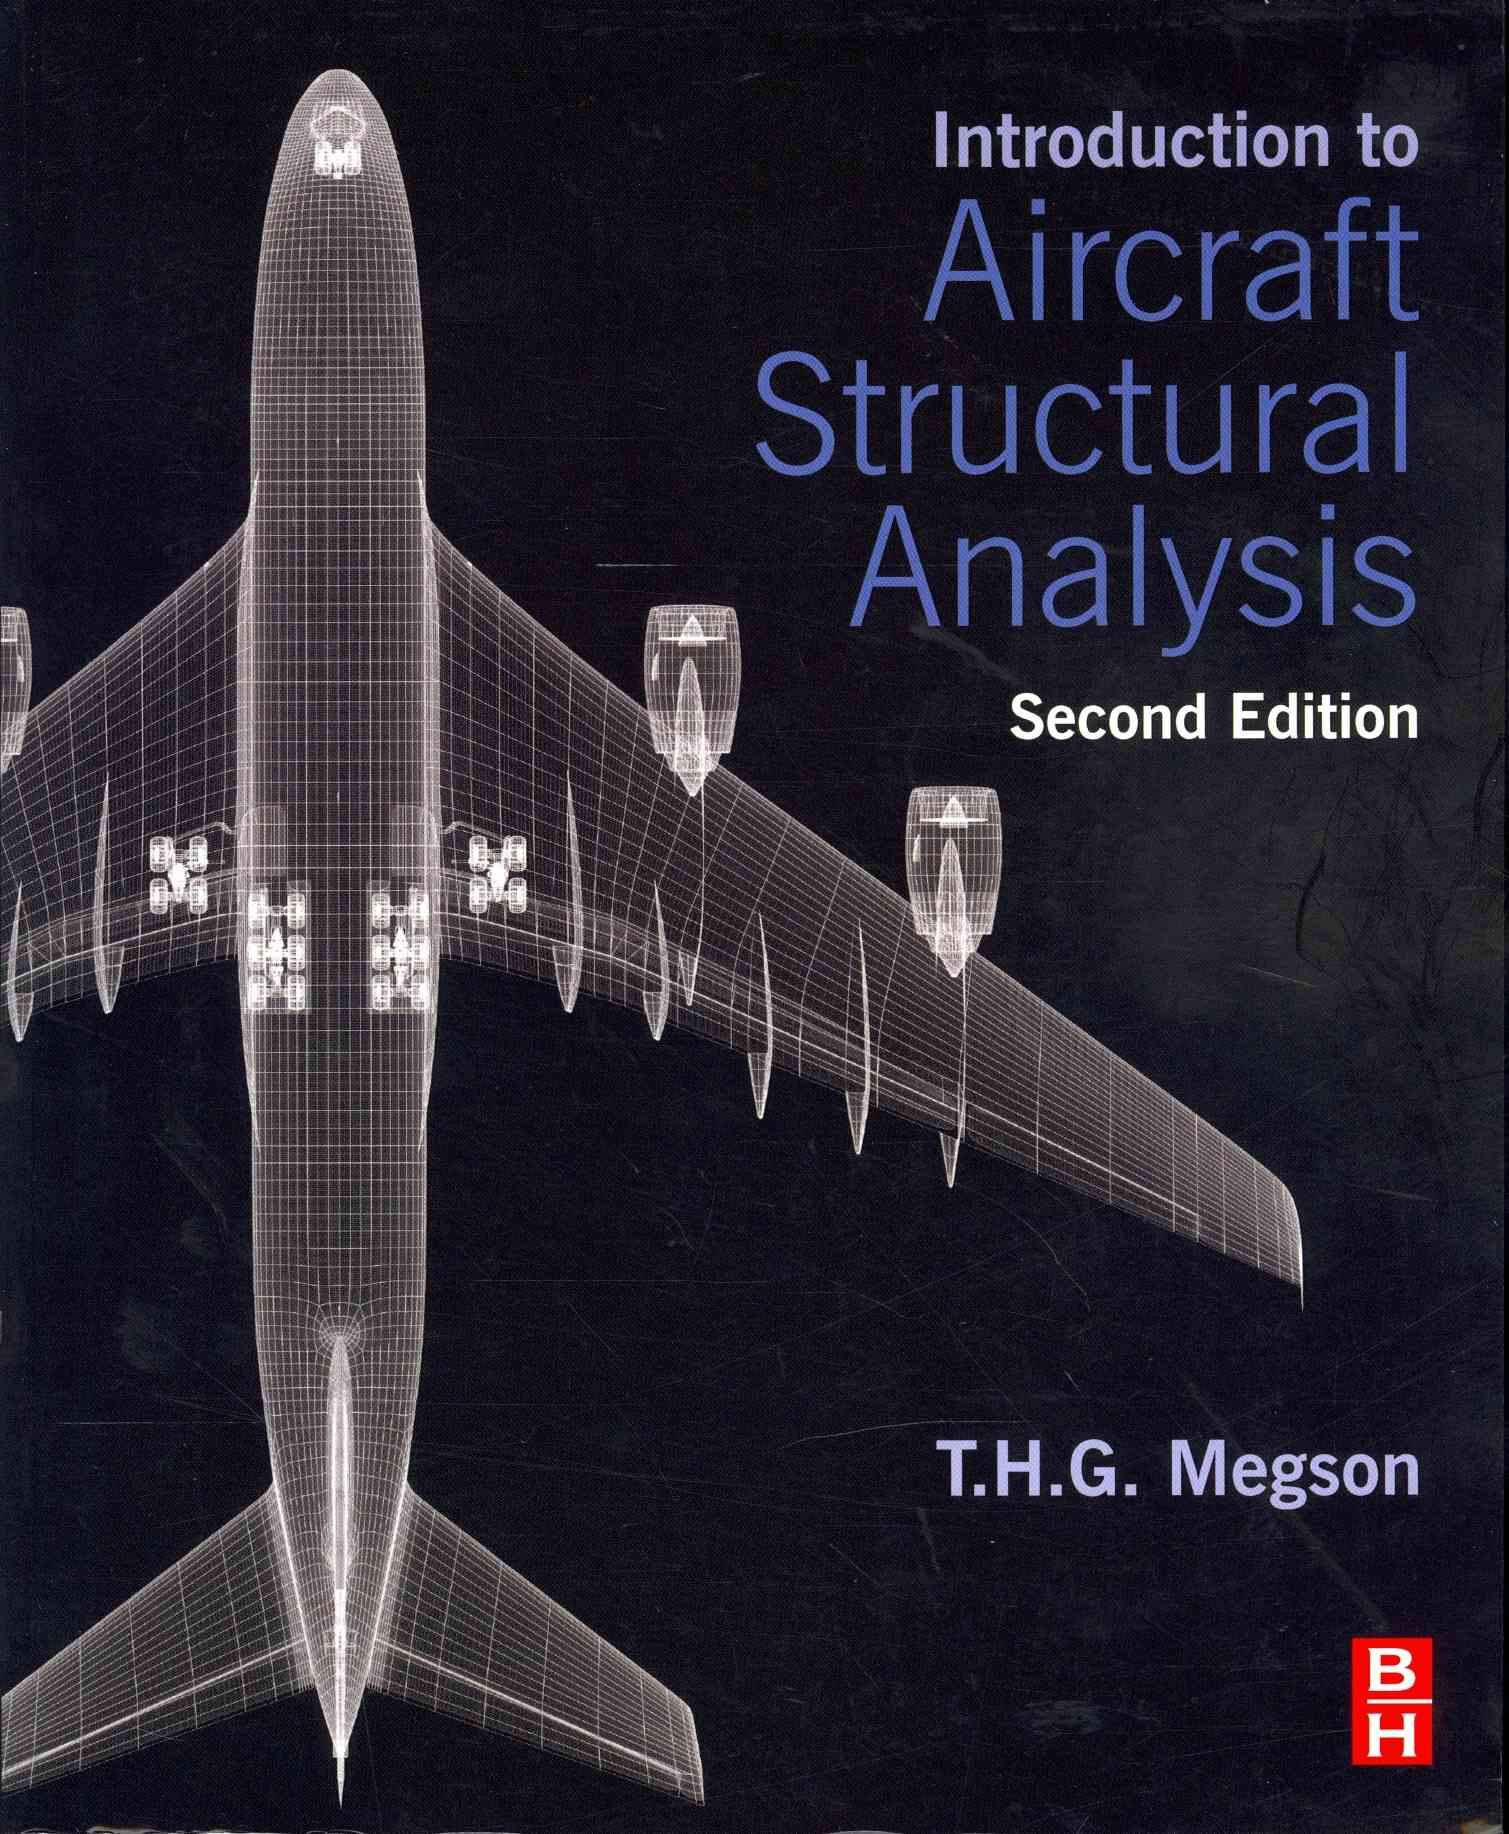 Introduction to Aircraft Structural Analysis By Megson, T. H. G.